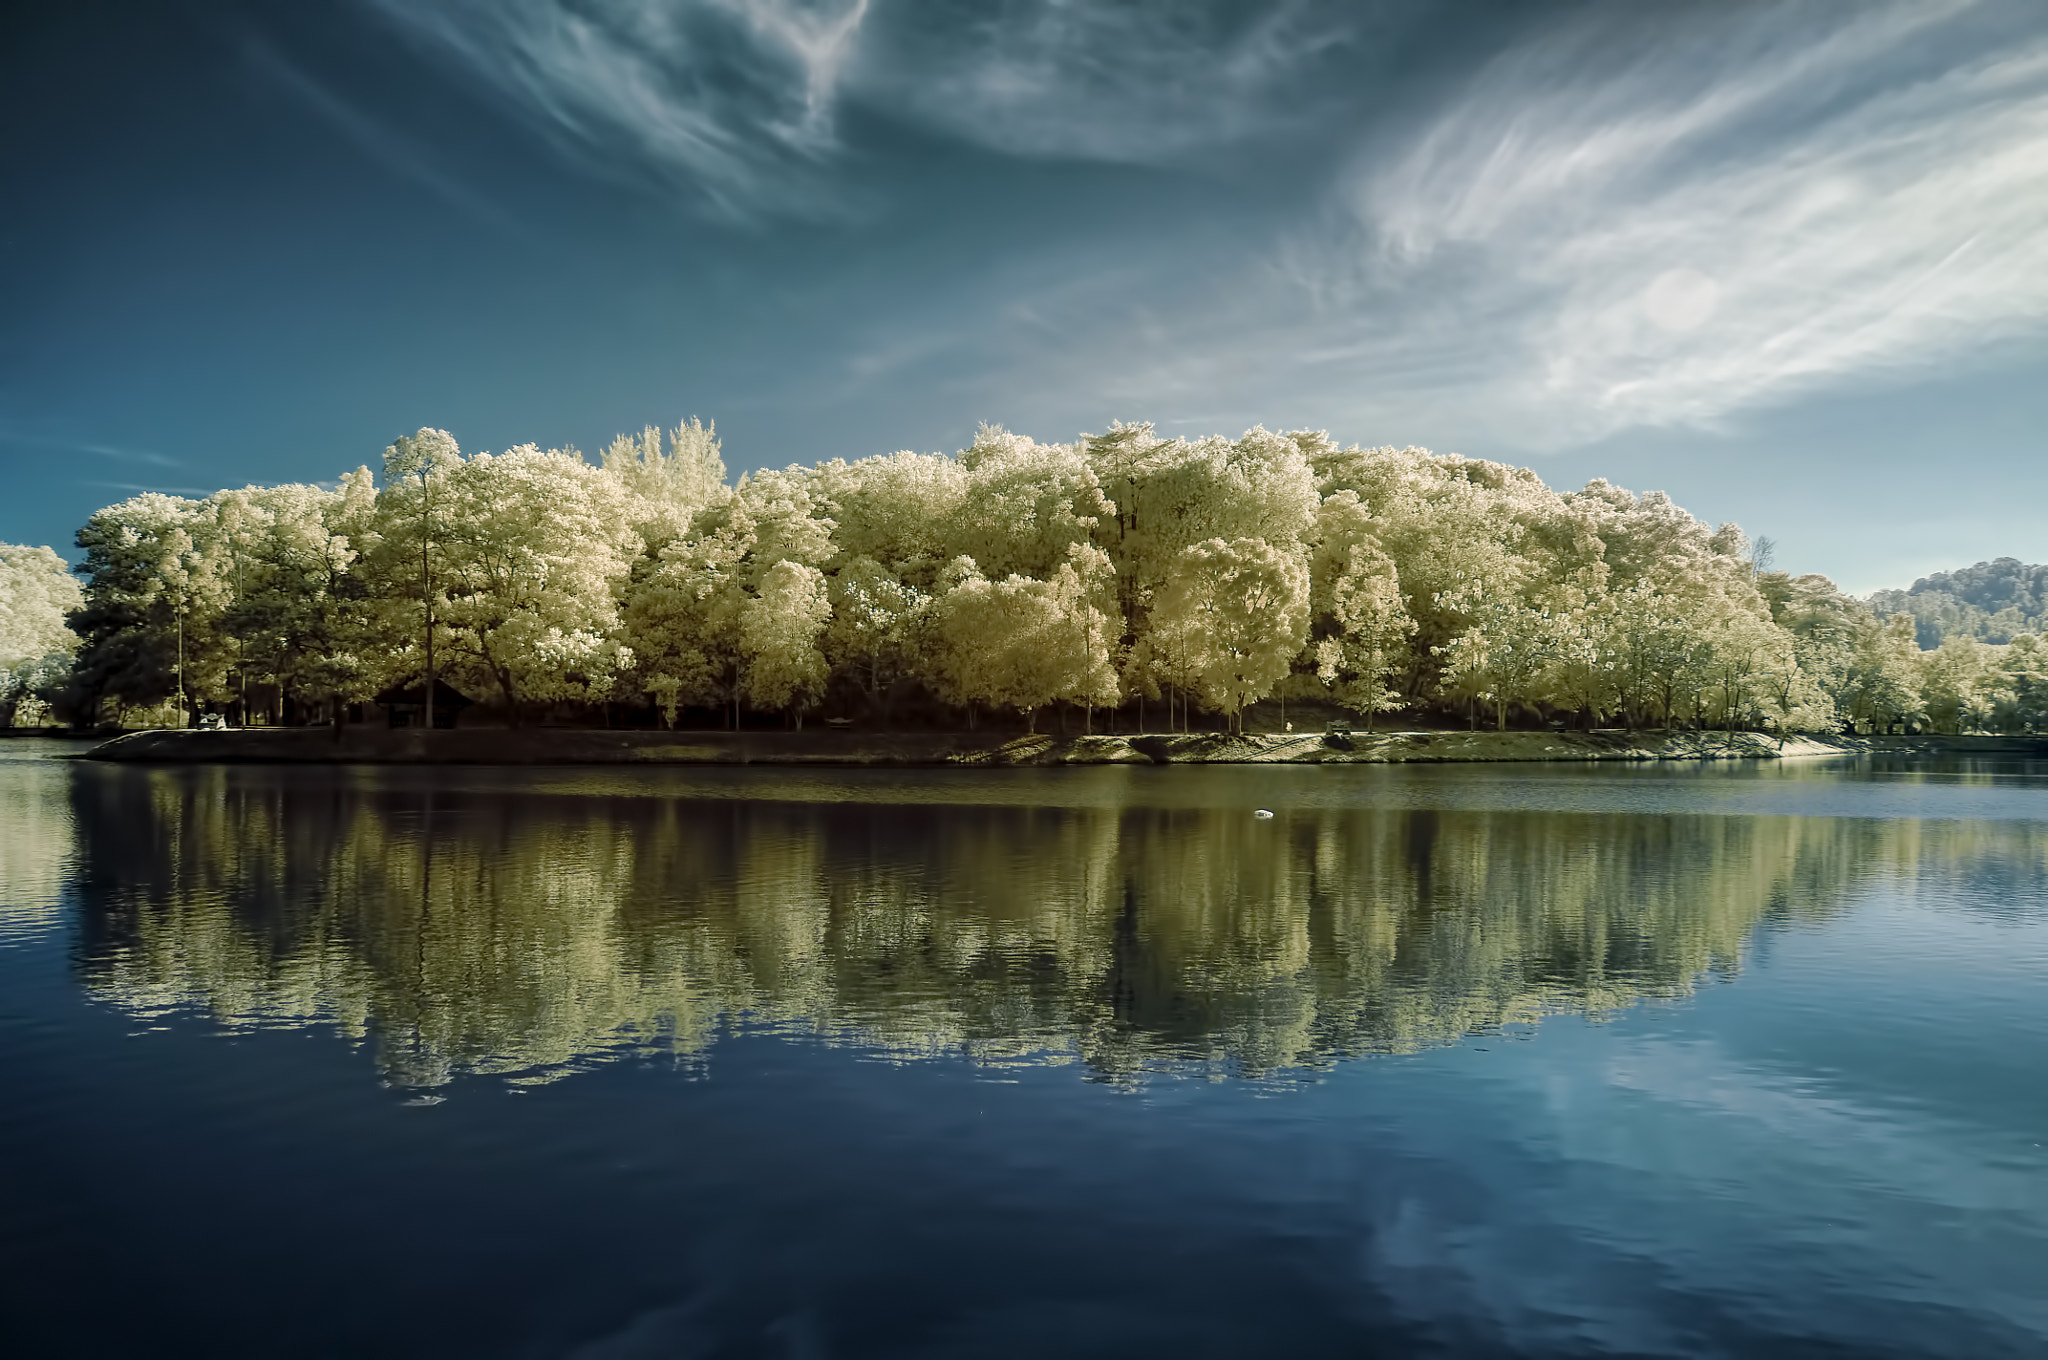 Photograph My Place (HDR Infrared Version) by AbuIrfan Outdoorgraphy on 500px